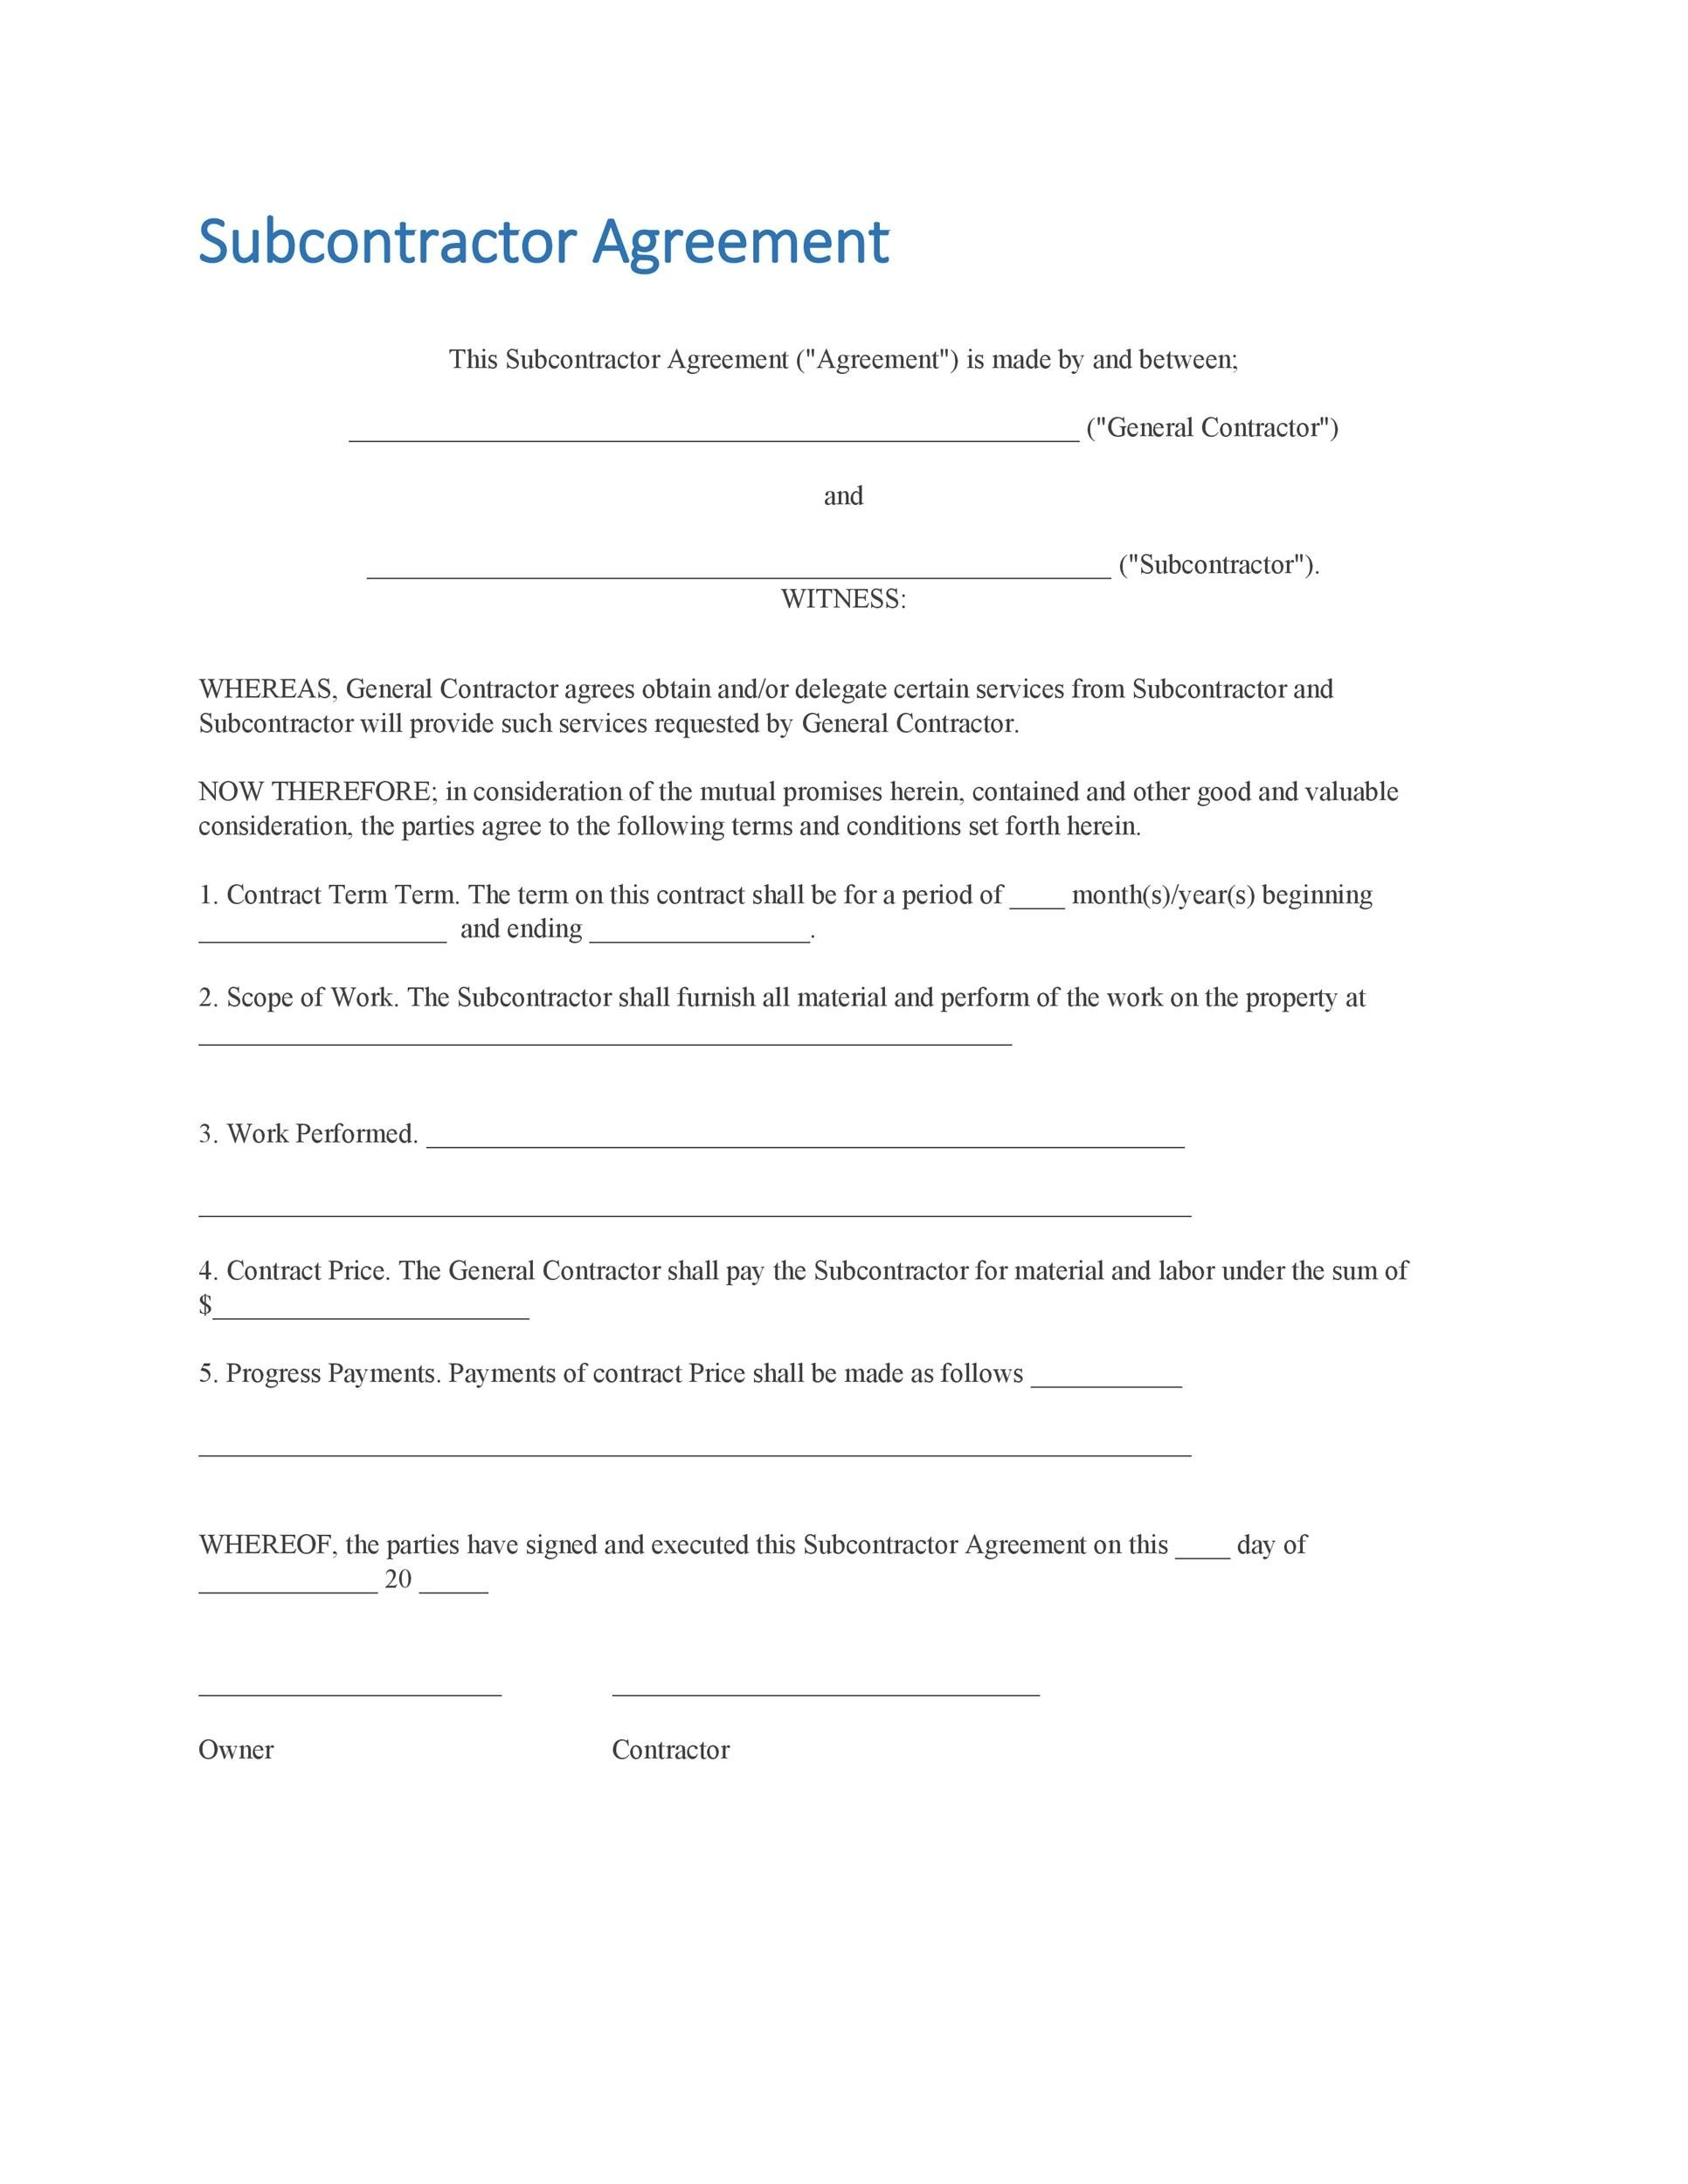 Sample Subcontractor Agreement Sample Noncompete Agreement Form - subcontractor agreement template